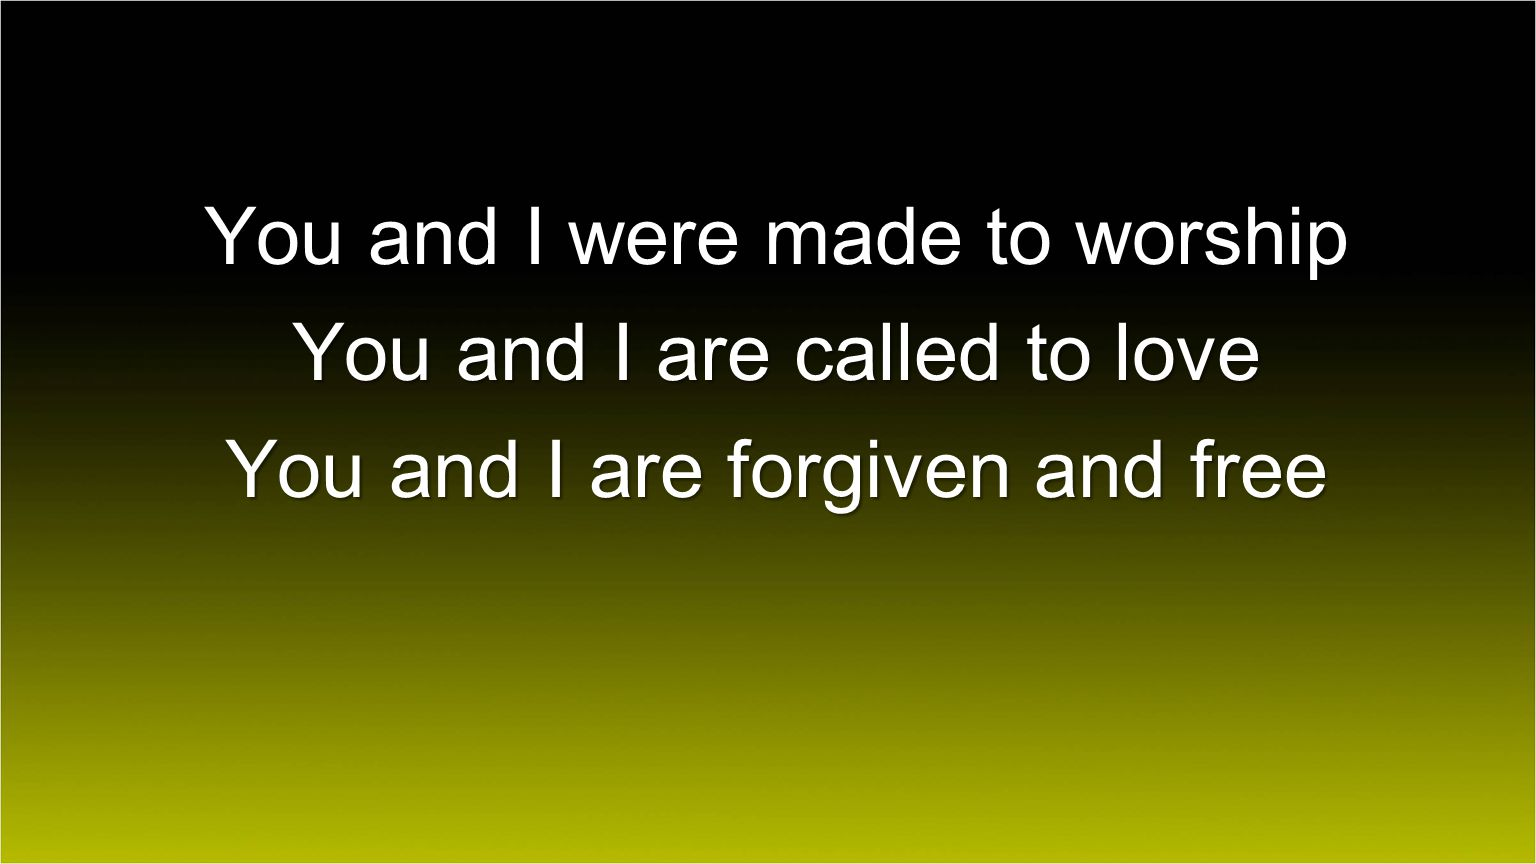 You and I were made to worship You and I are called to love